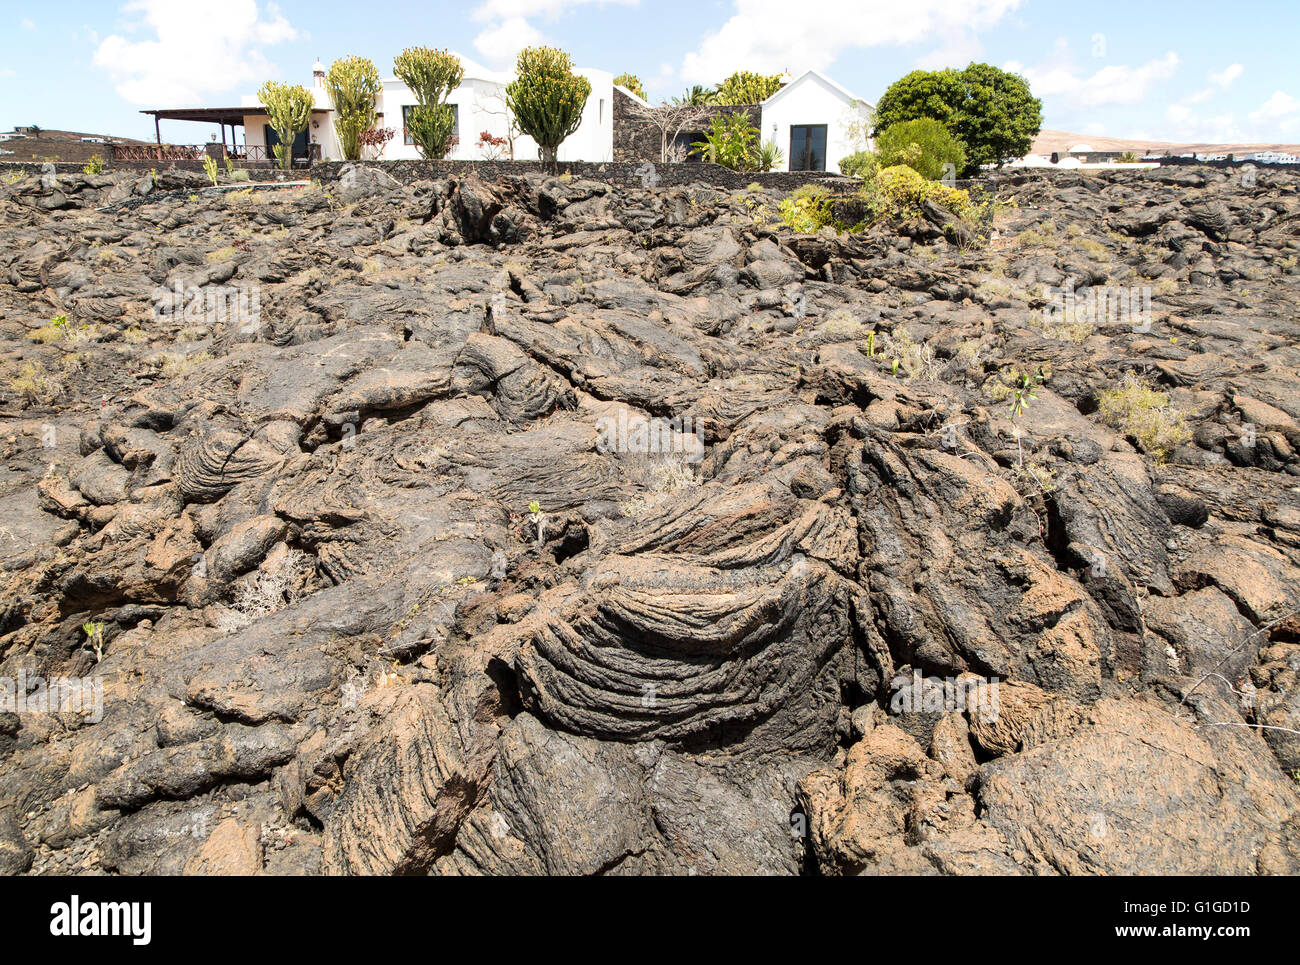 House standing in solidified pahoehoe or ropey lava field, Tahiche, Lanzarote, Canary Islands, Spain - Stock Image